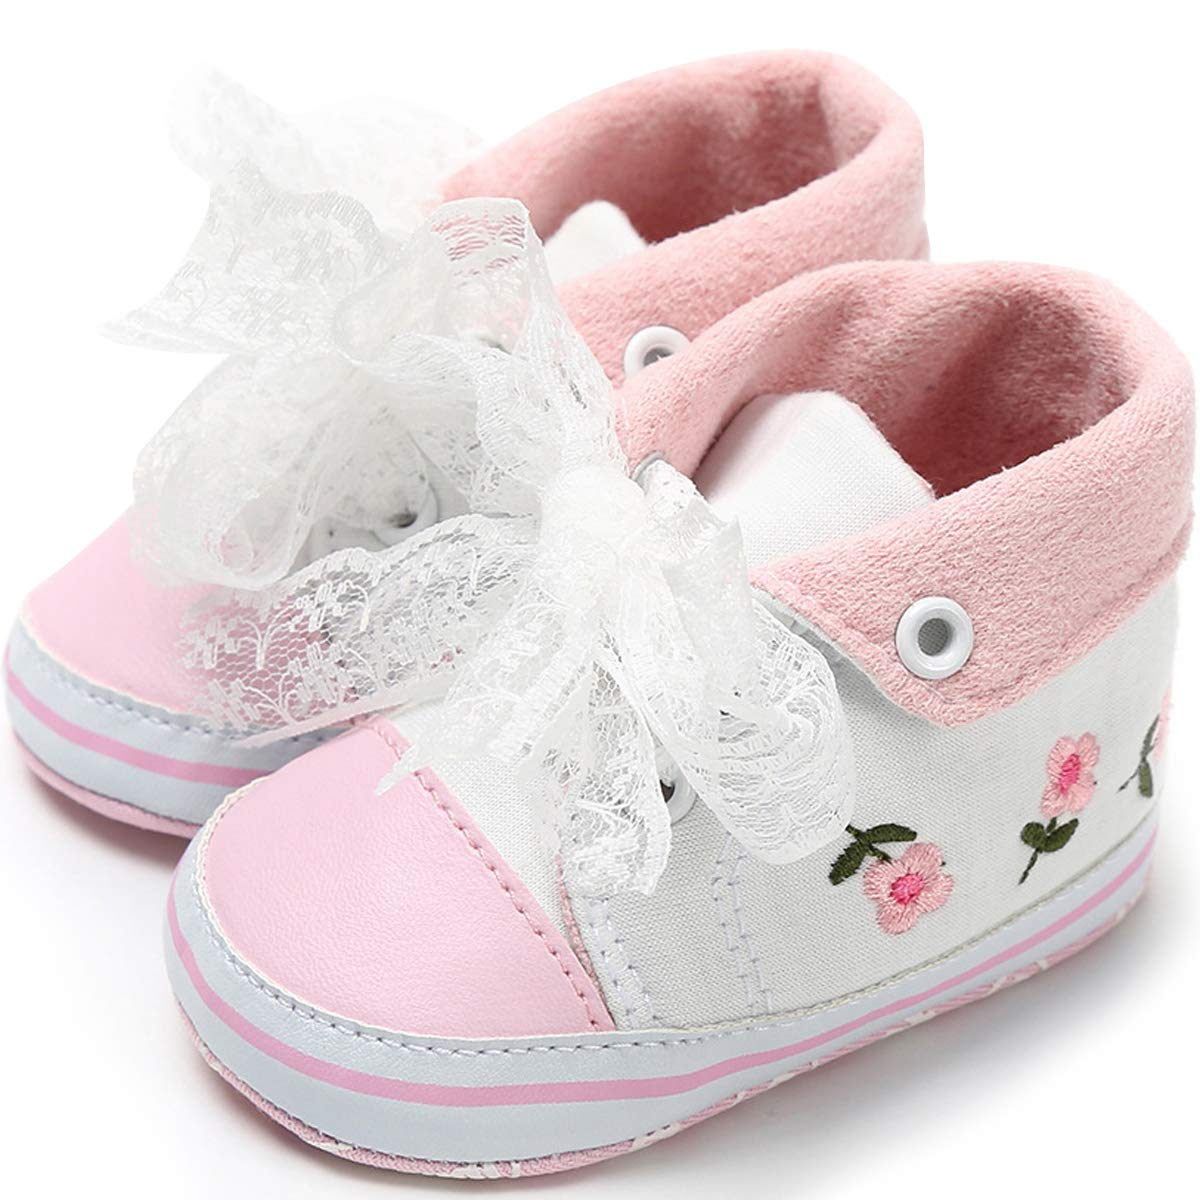 vanberfia Infant Boys Girls Crib Shoes Toddler Sneakers for 0-18 Months